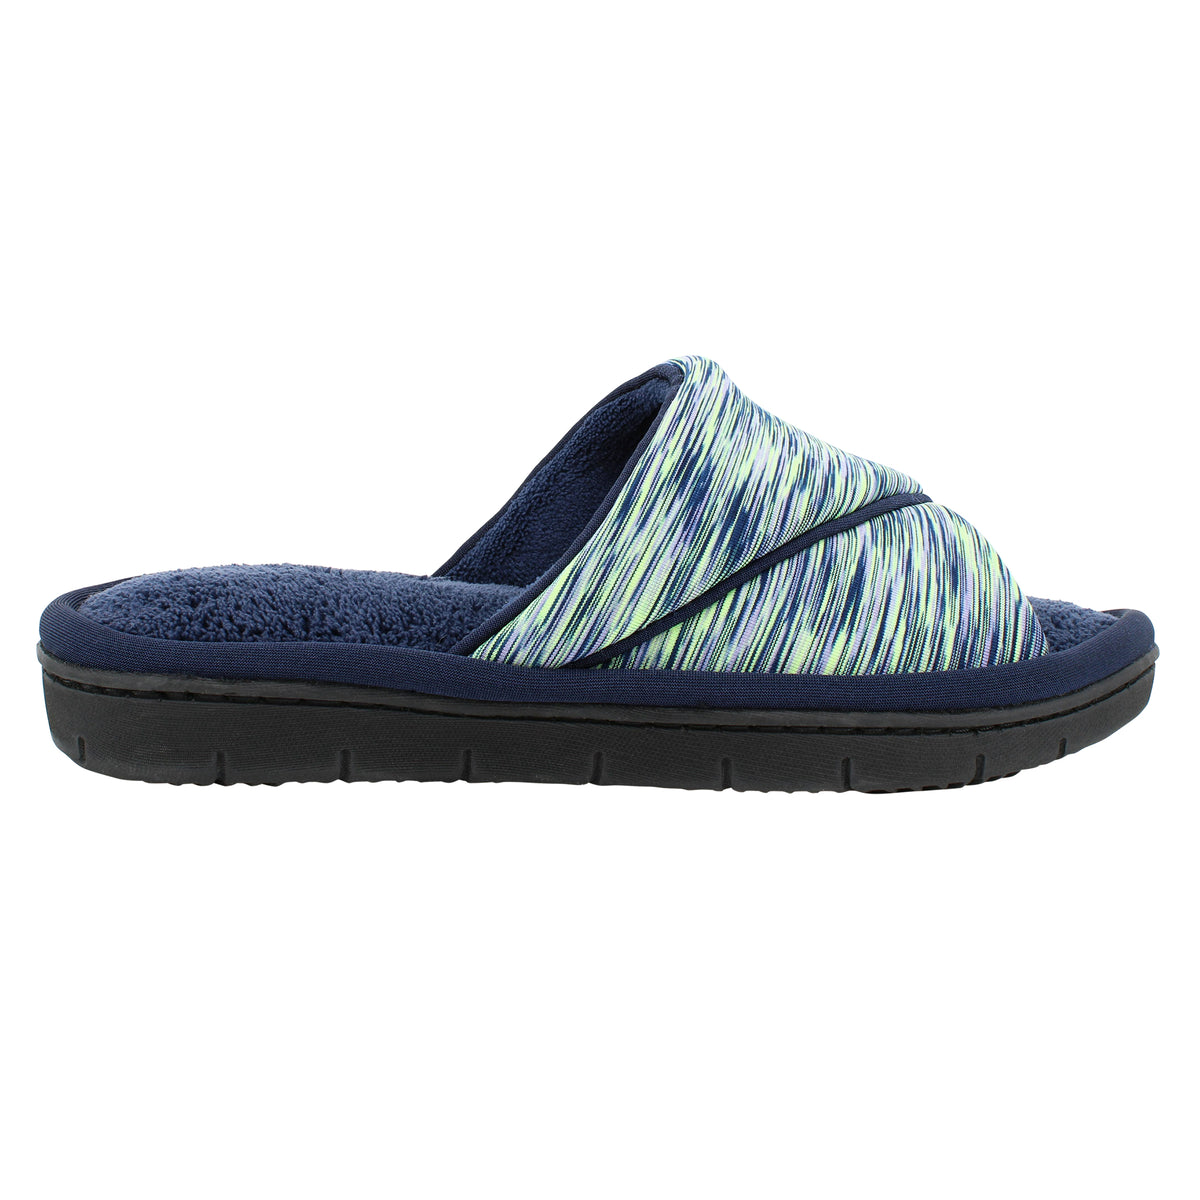 Isotoner SPACE DYE KNIT Open-Toe Slide 360° Surround Comfort™ Memory Foam